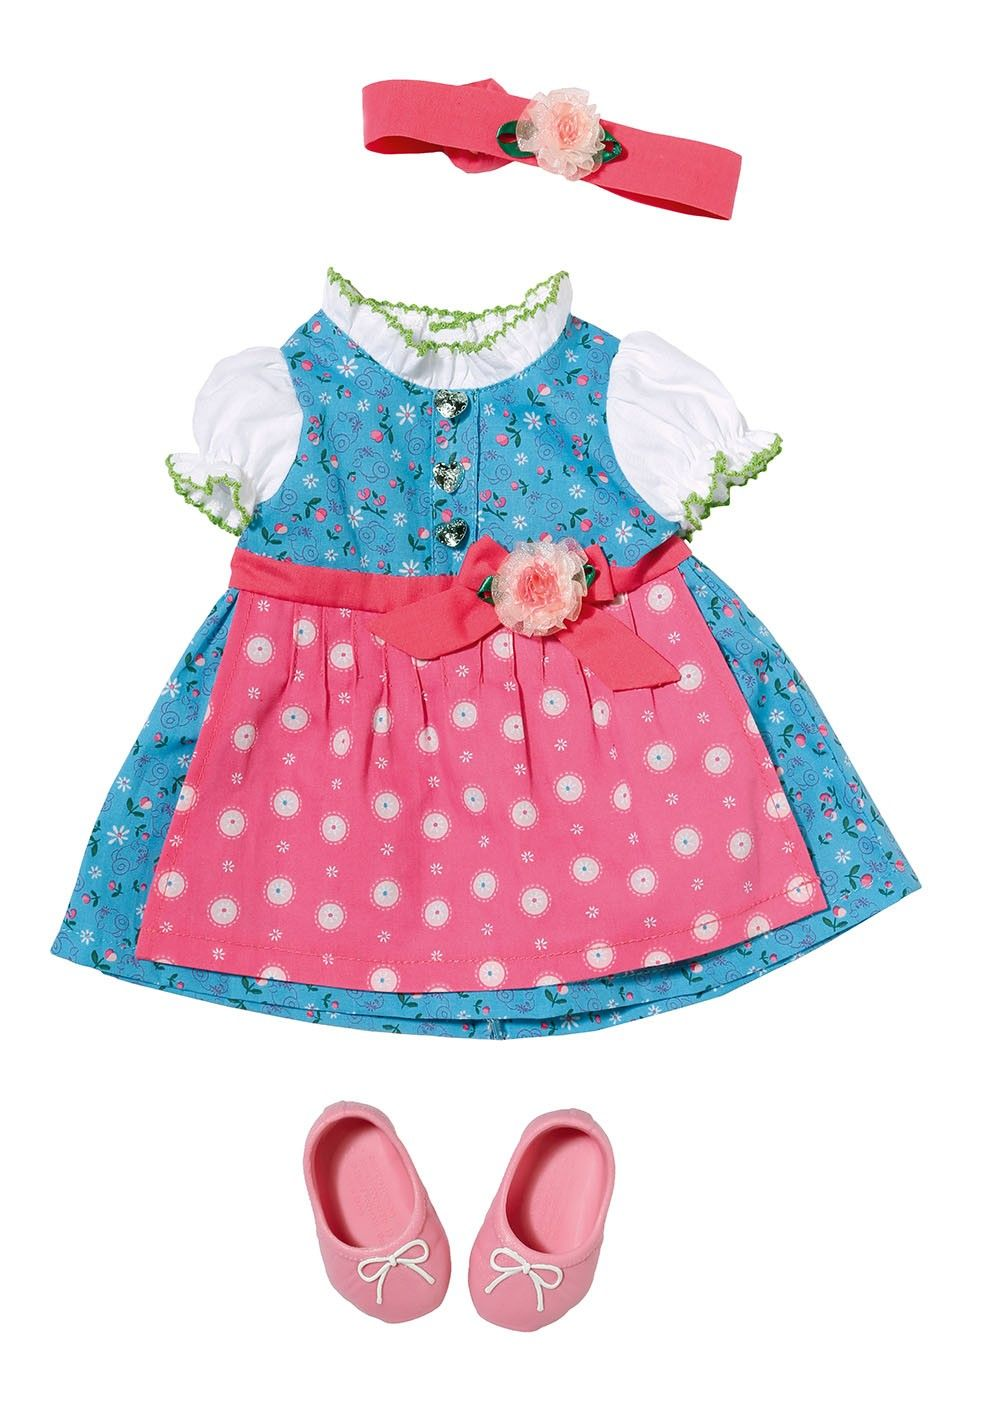 Pin By Alicja On Baby Born Dirndl Fashion Doll Clothes